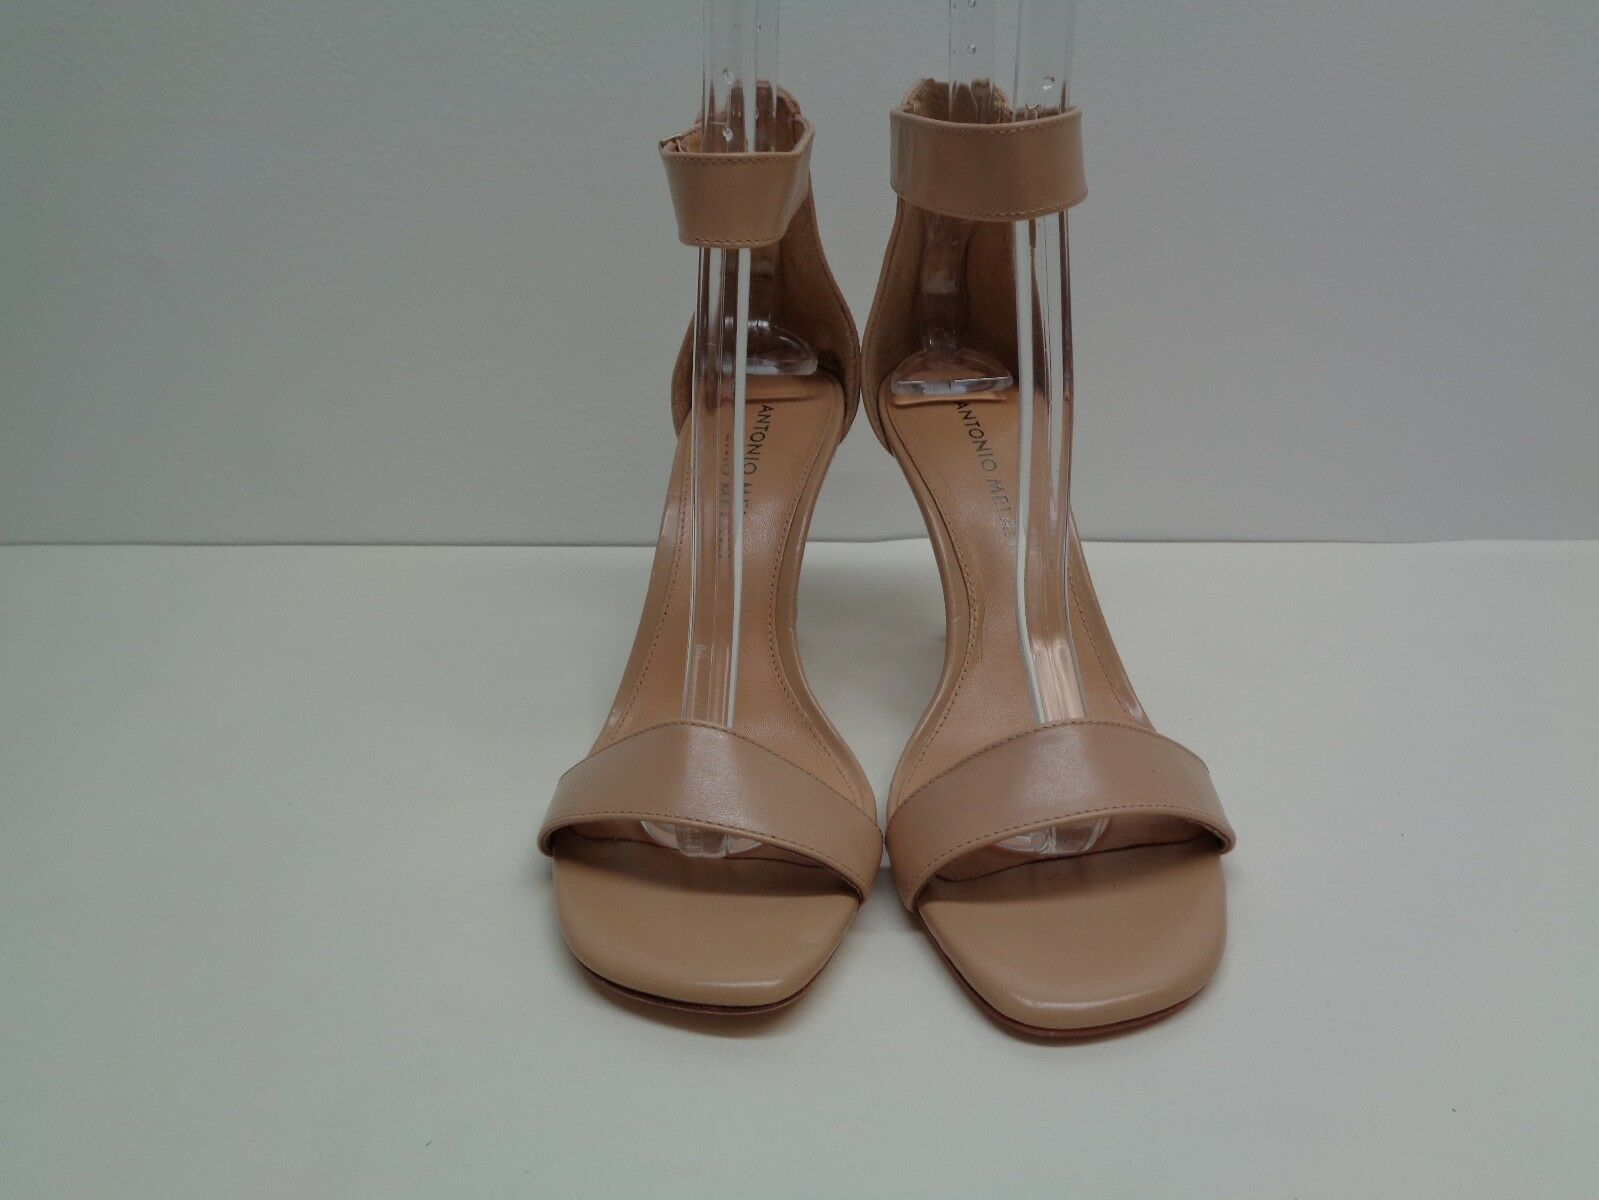 Antonio Melani Dimensione 6 M HAMILTON Biege Biege Biege Leather Dress Sandals New donna scarpe 7519d8